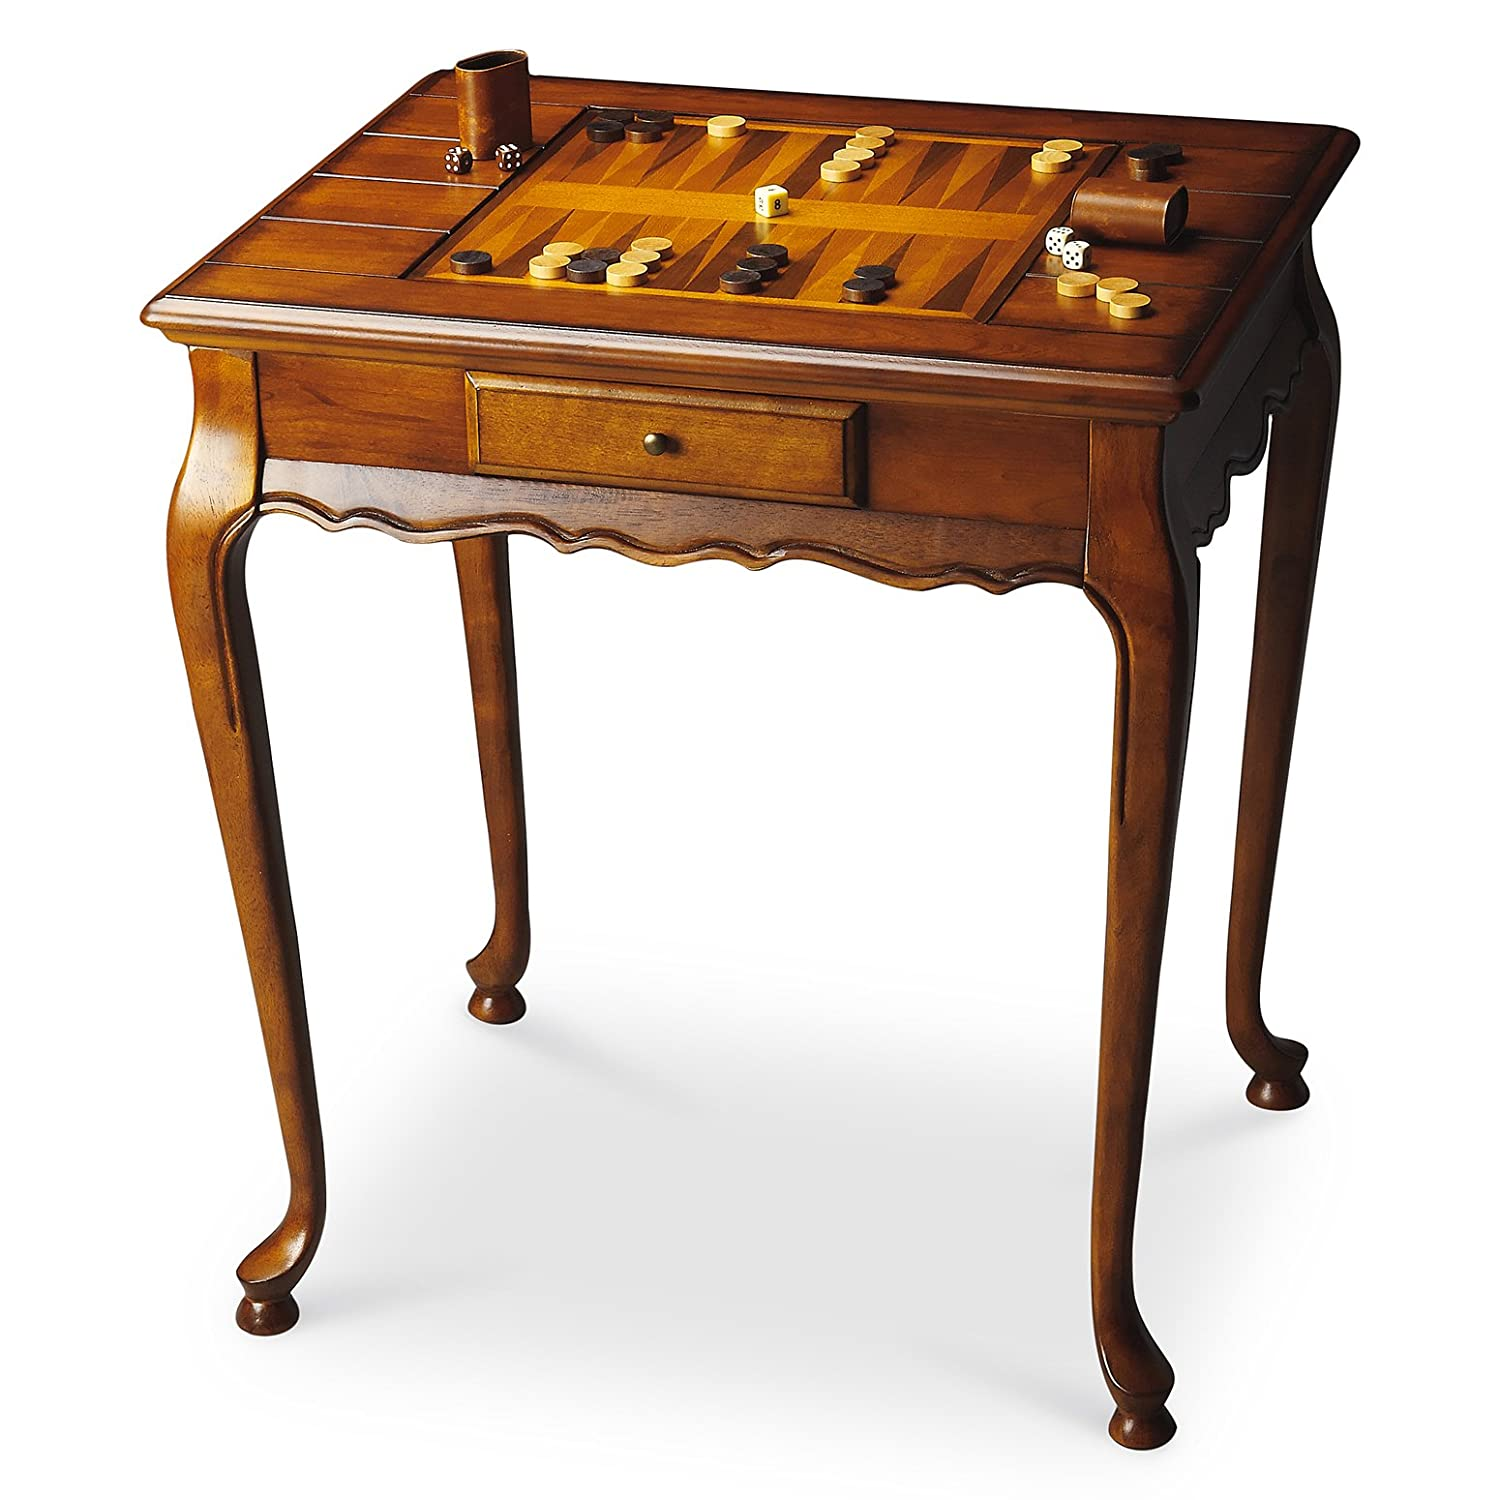 Amazon com tables wellington game table olive ash burl chess checkers backgammon accent furniture kitchen dining